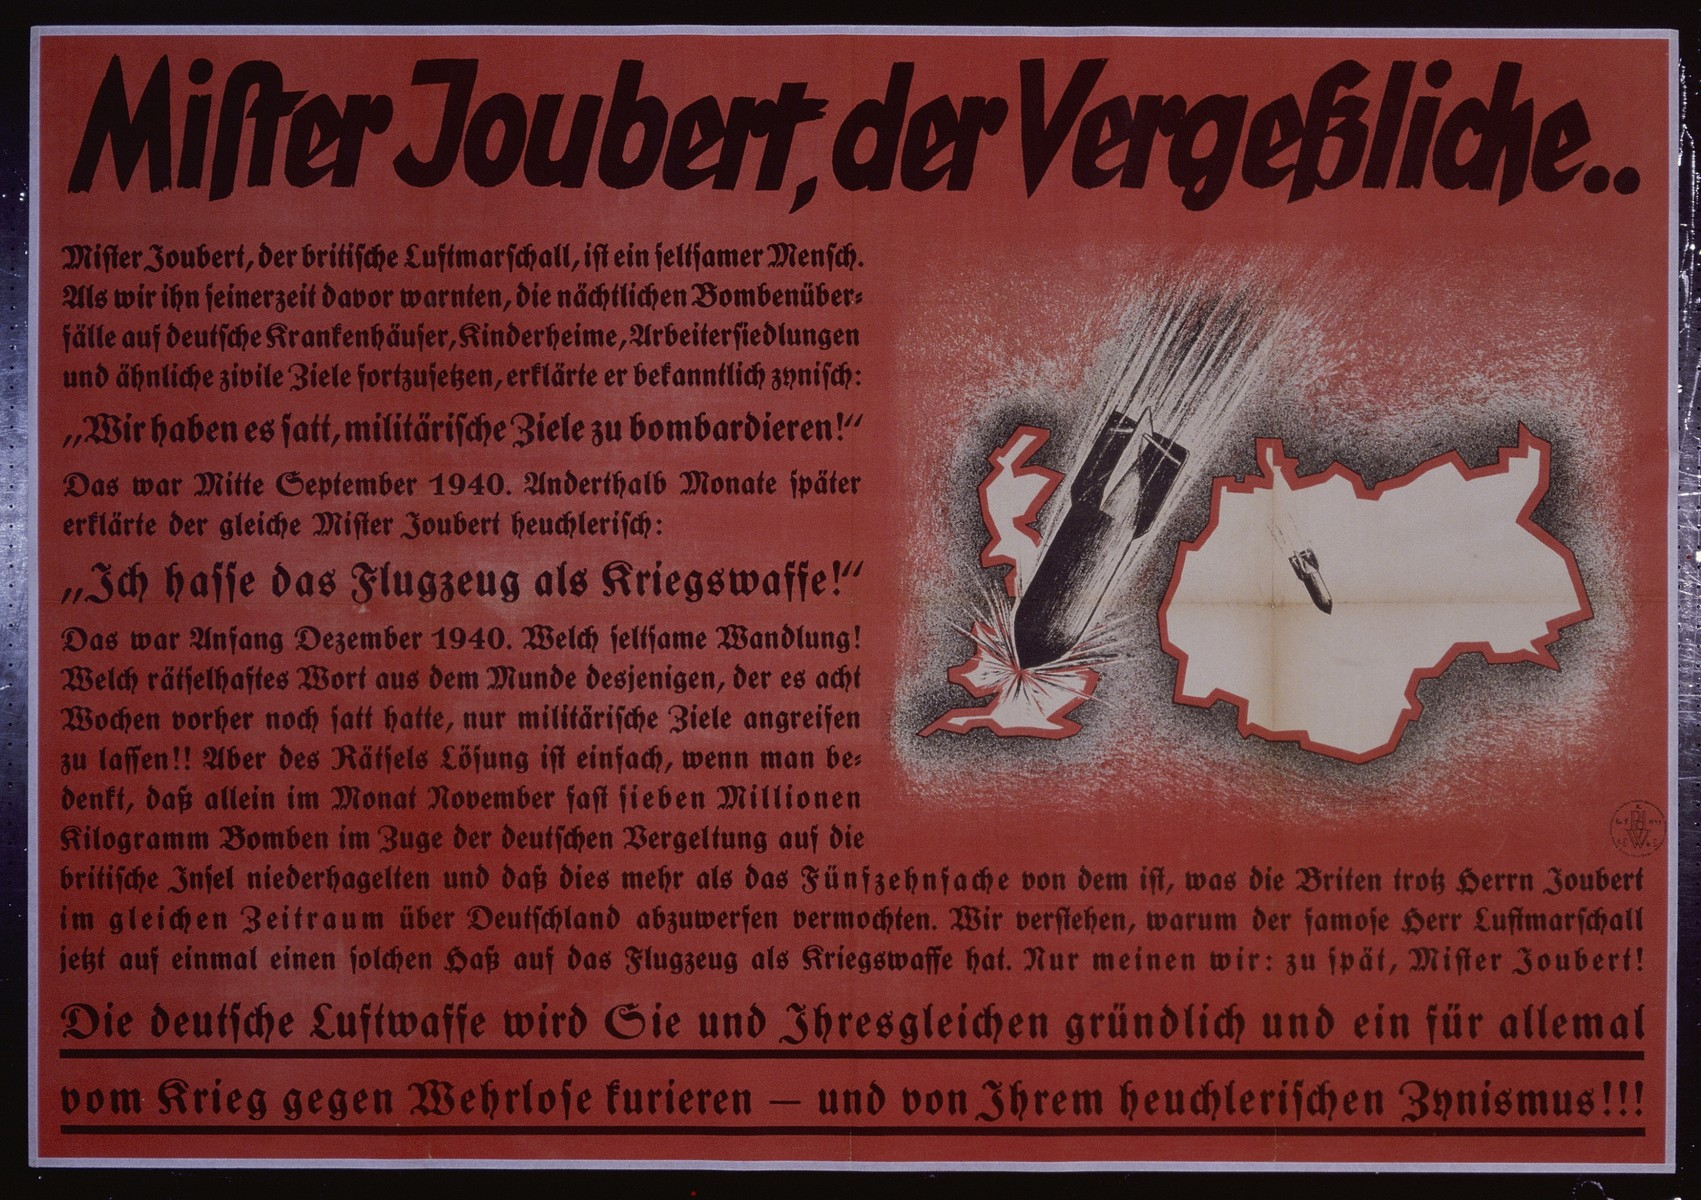 "Nazi propaganda poster entitled, ""Mister Joubert, der Vergebliche...,"" issued by the ""Parole der Woche,"" a wall newspaper (Wandzeitung) published by the National Socialist Party propaganda office in Munich."